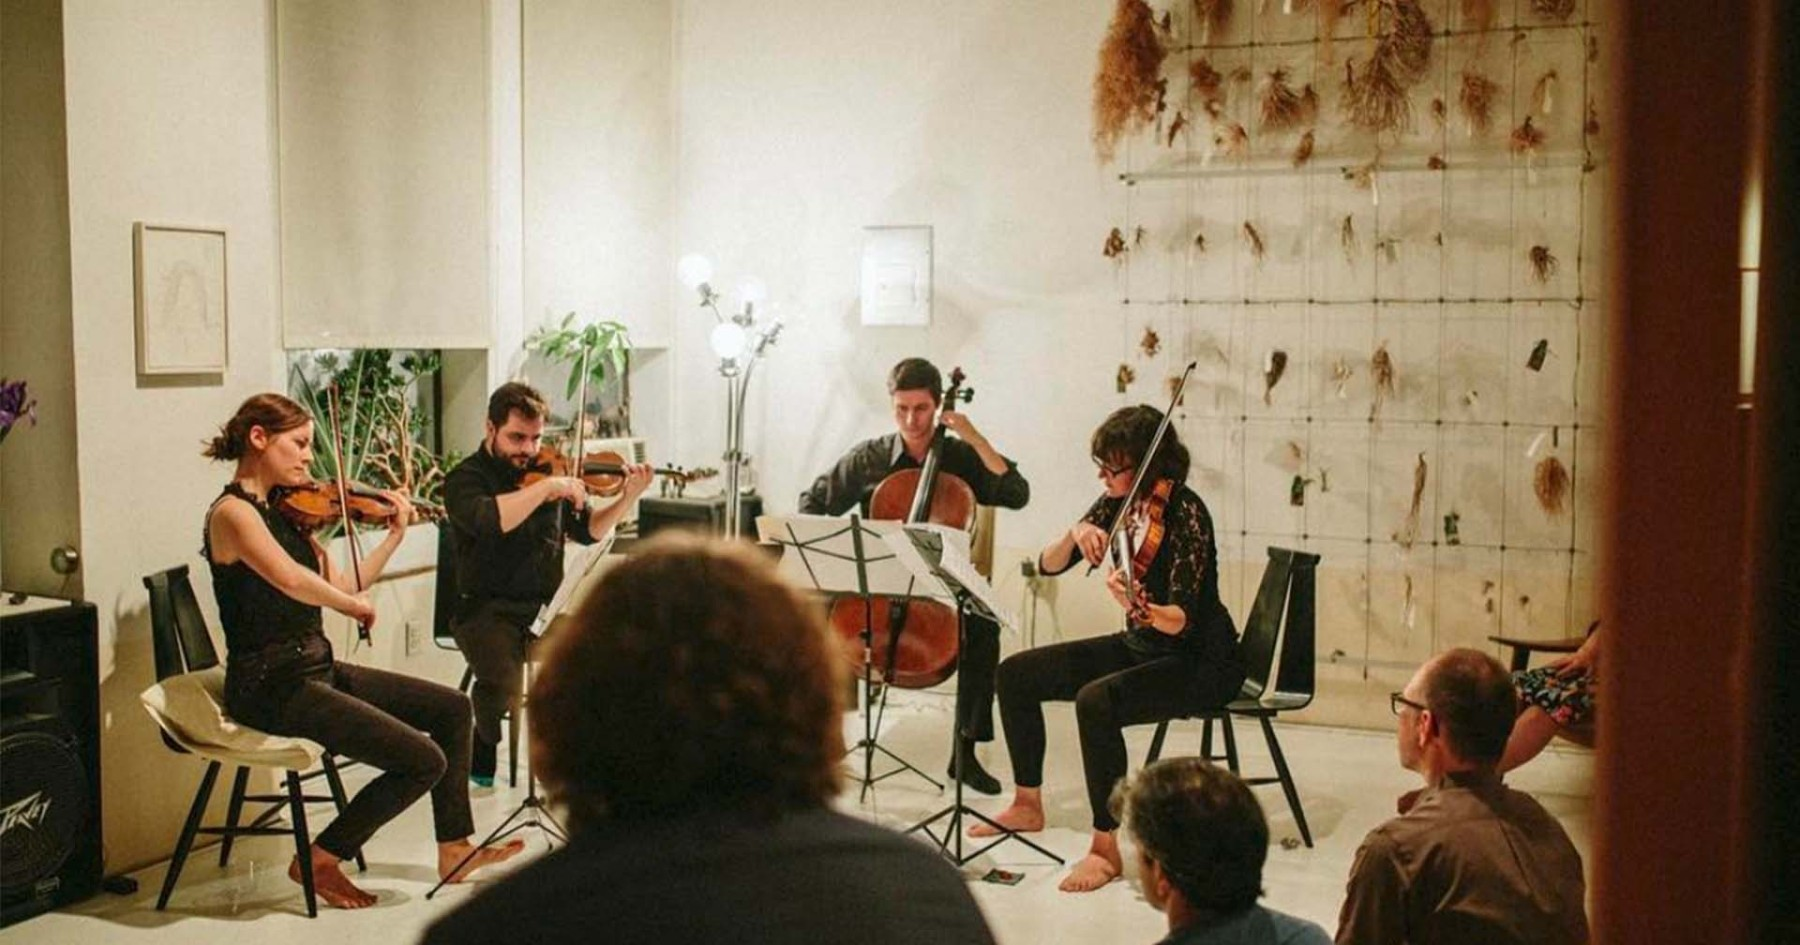 Class Up Your Holiday Party with Chicago's New Musician Rental Service